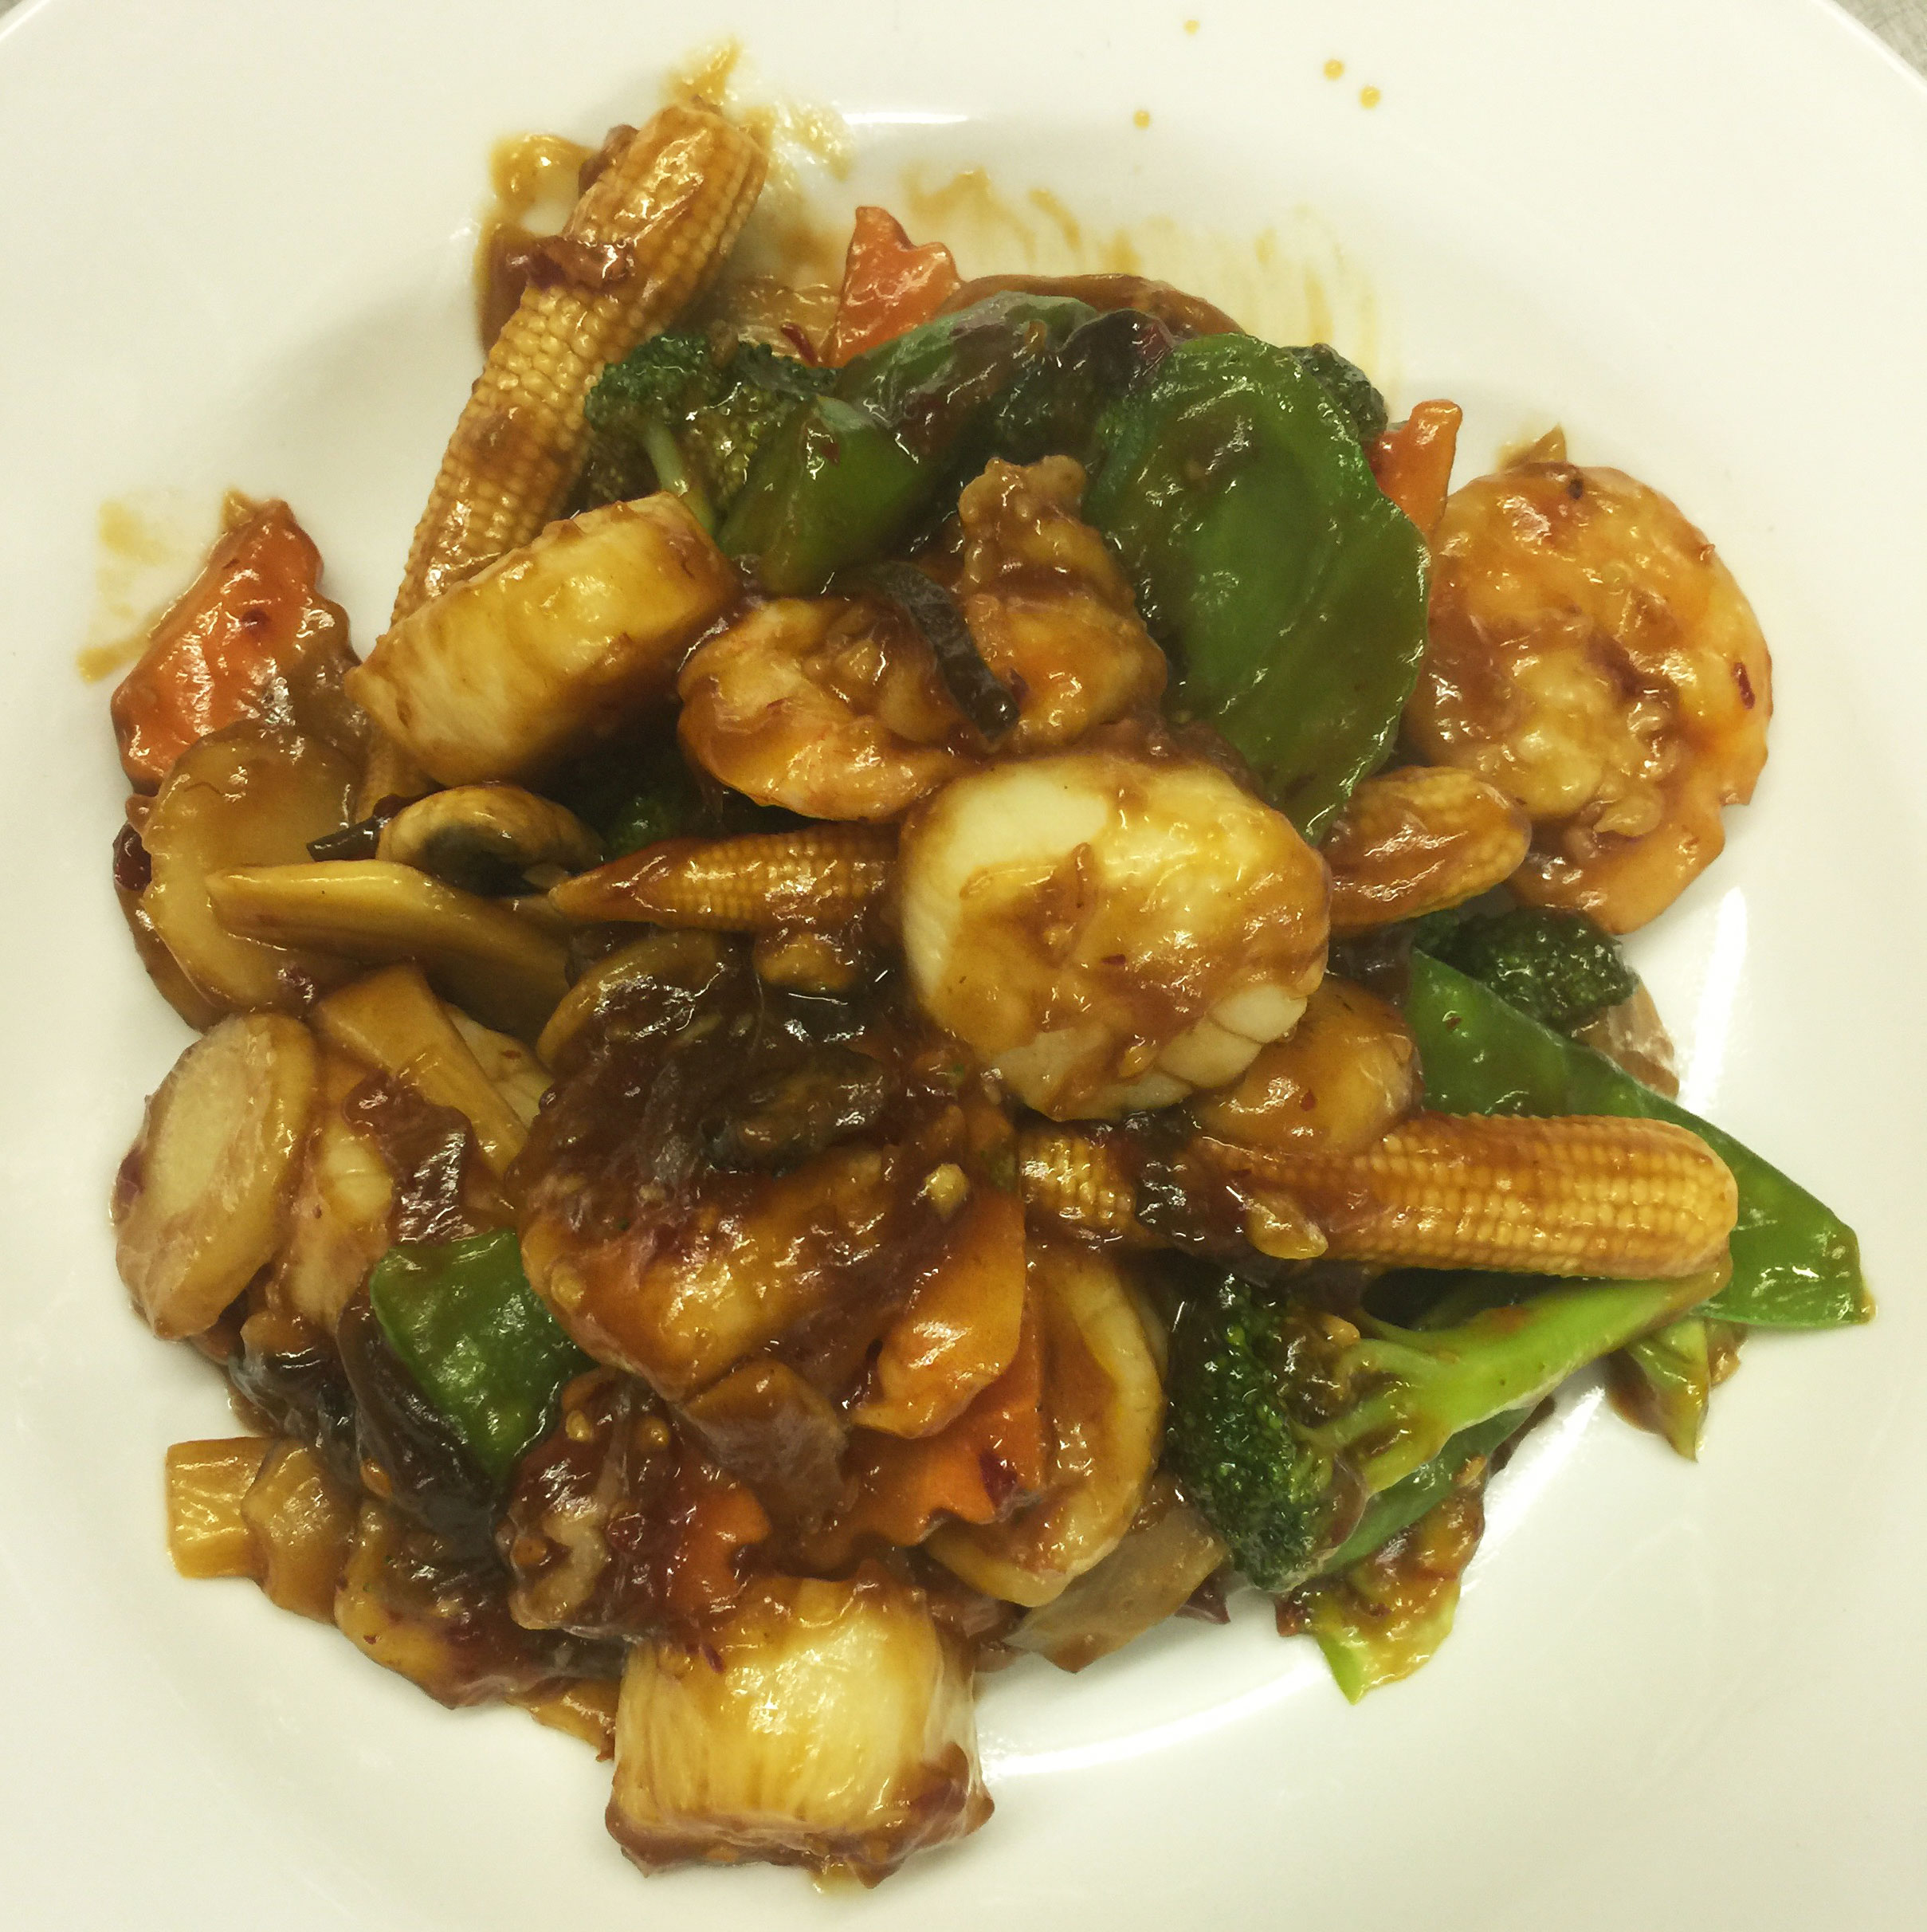 171. Scallop and Shrimp w. Garlic Sauce Image